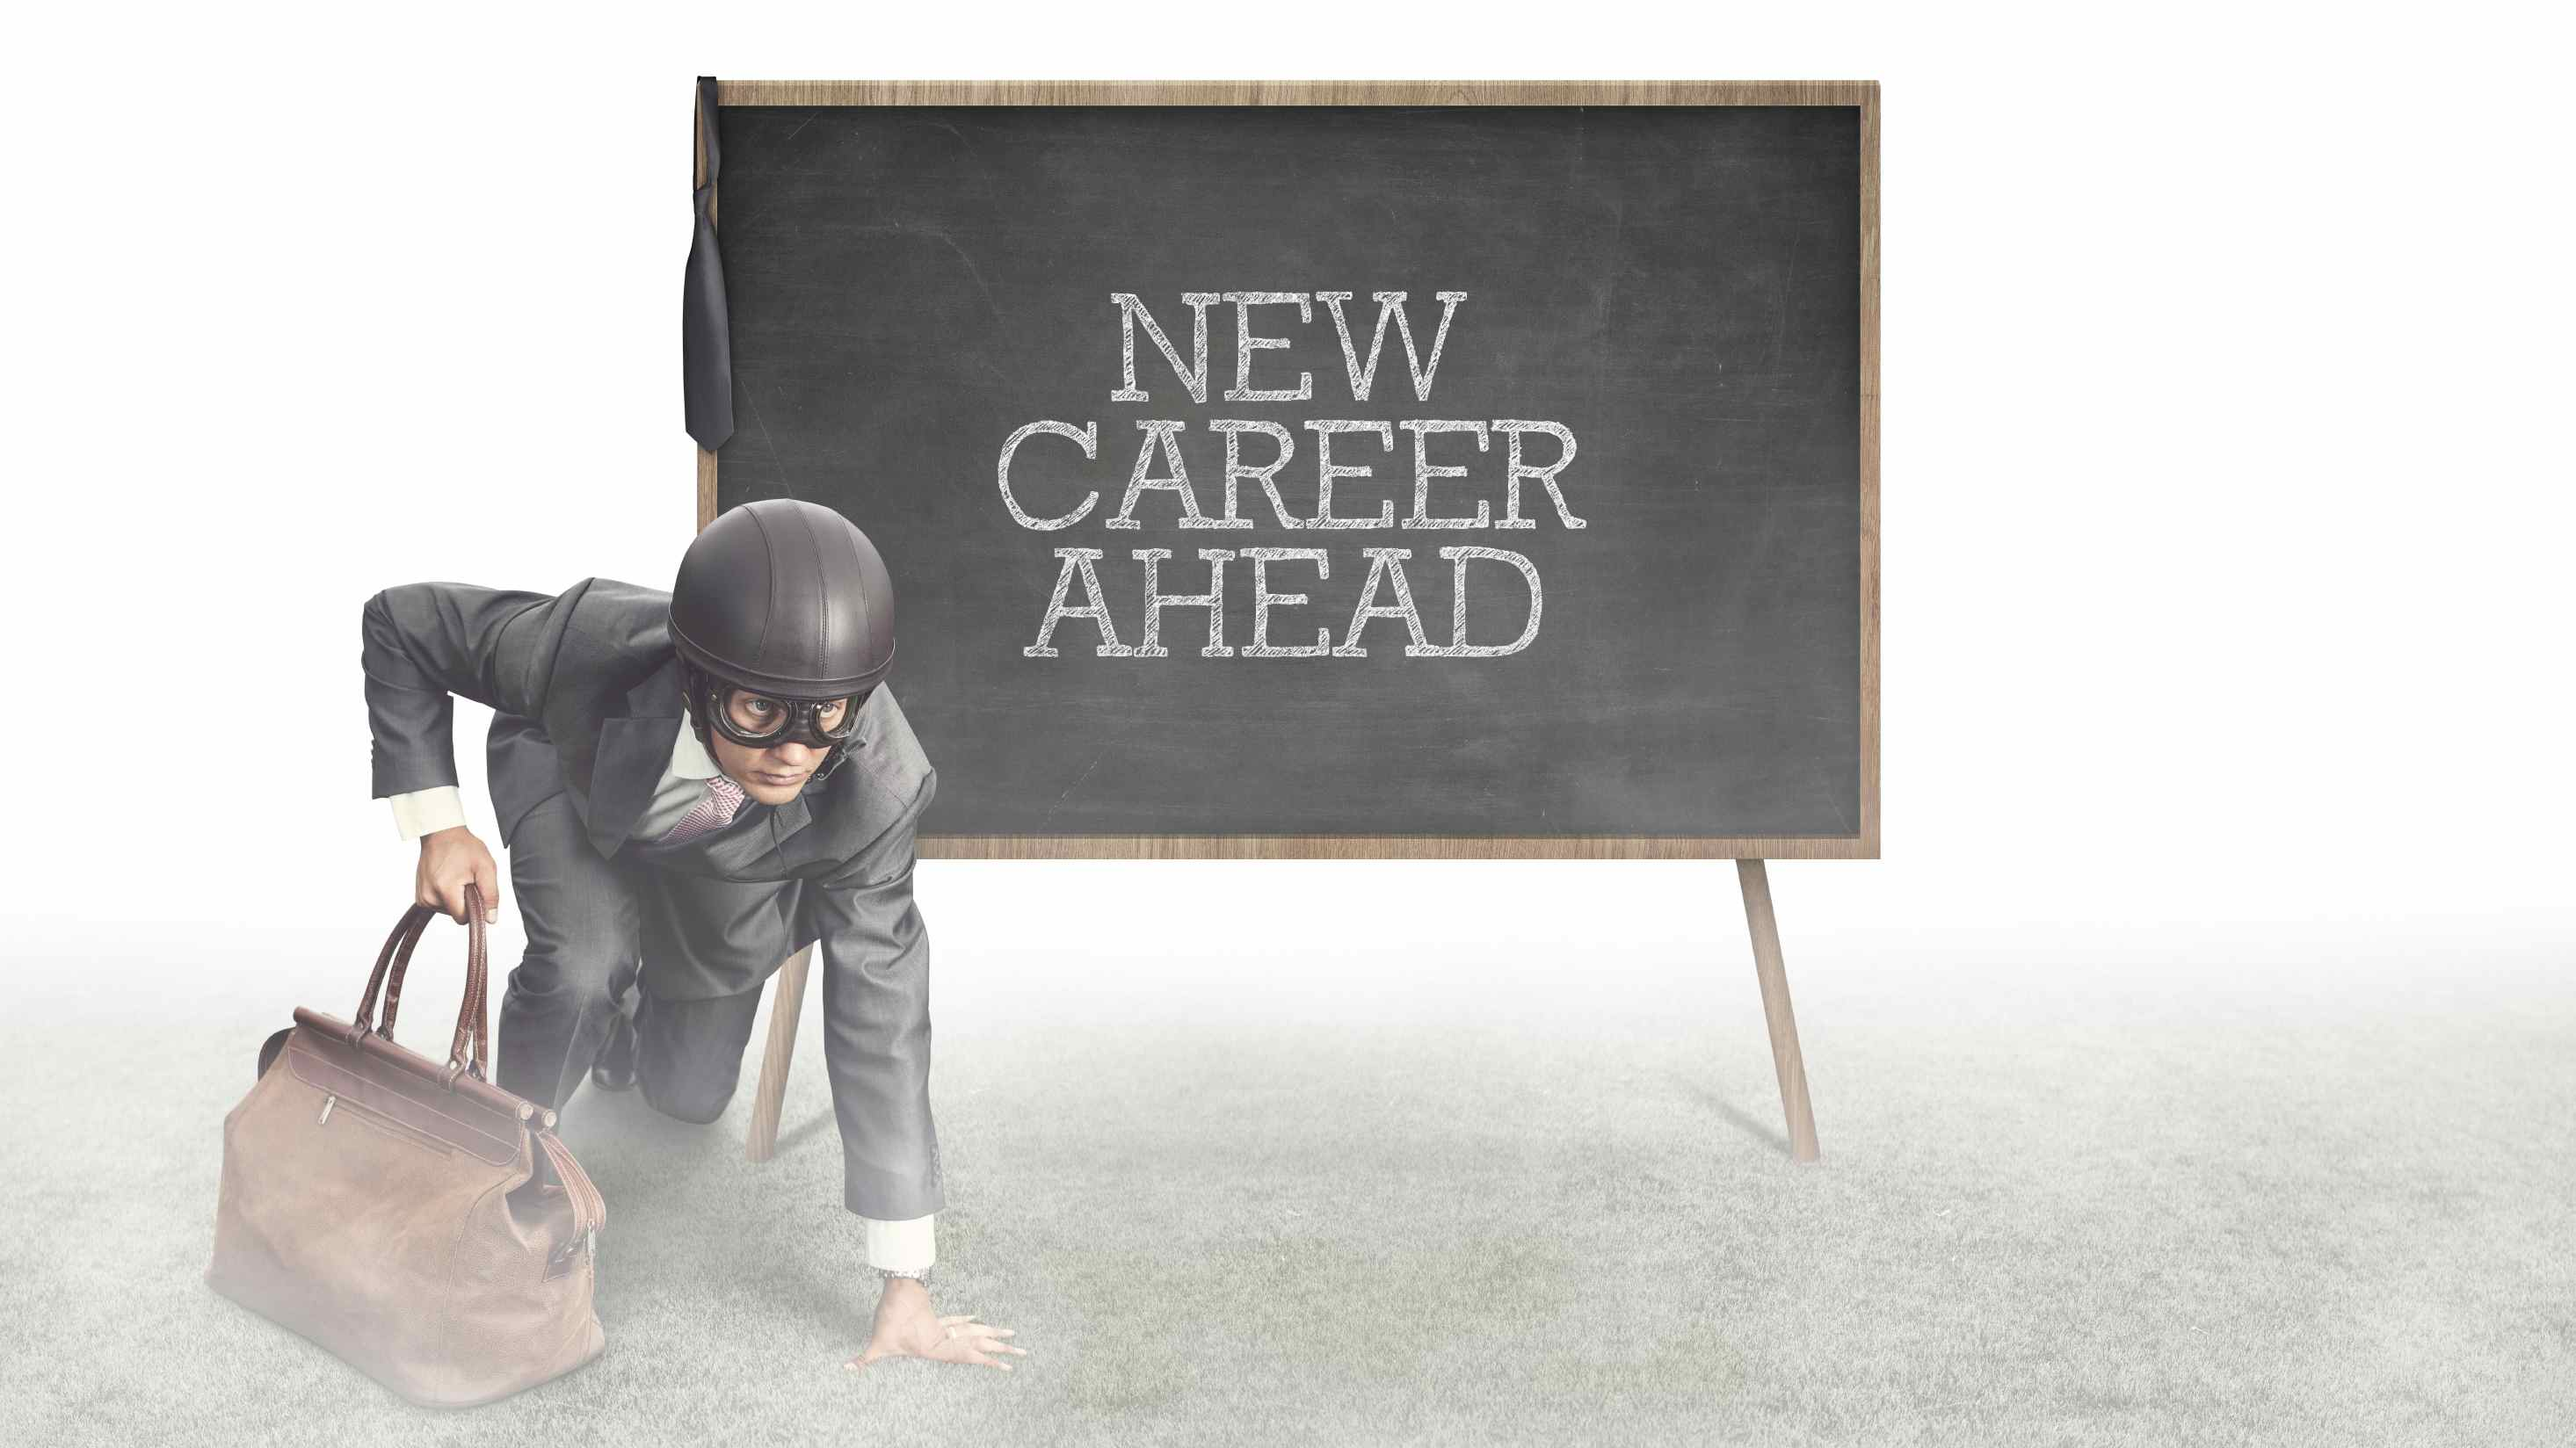 is there an easy path to career change career changers hub istock 000069830749 large